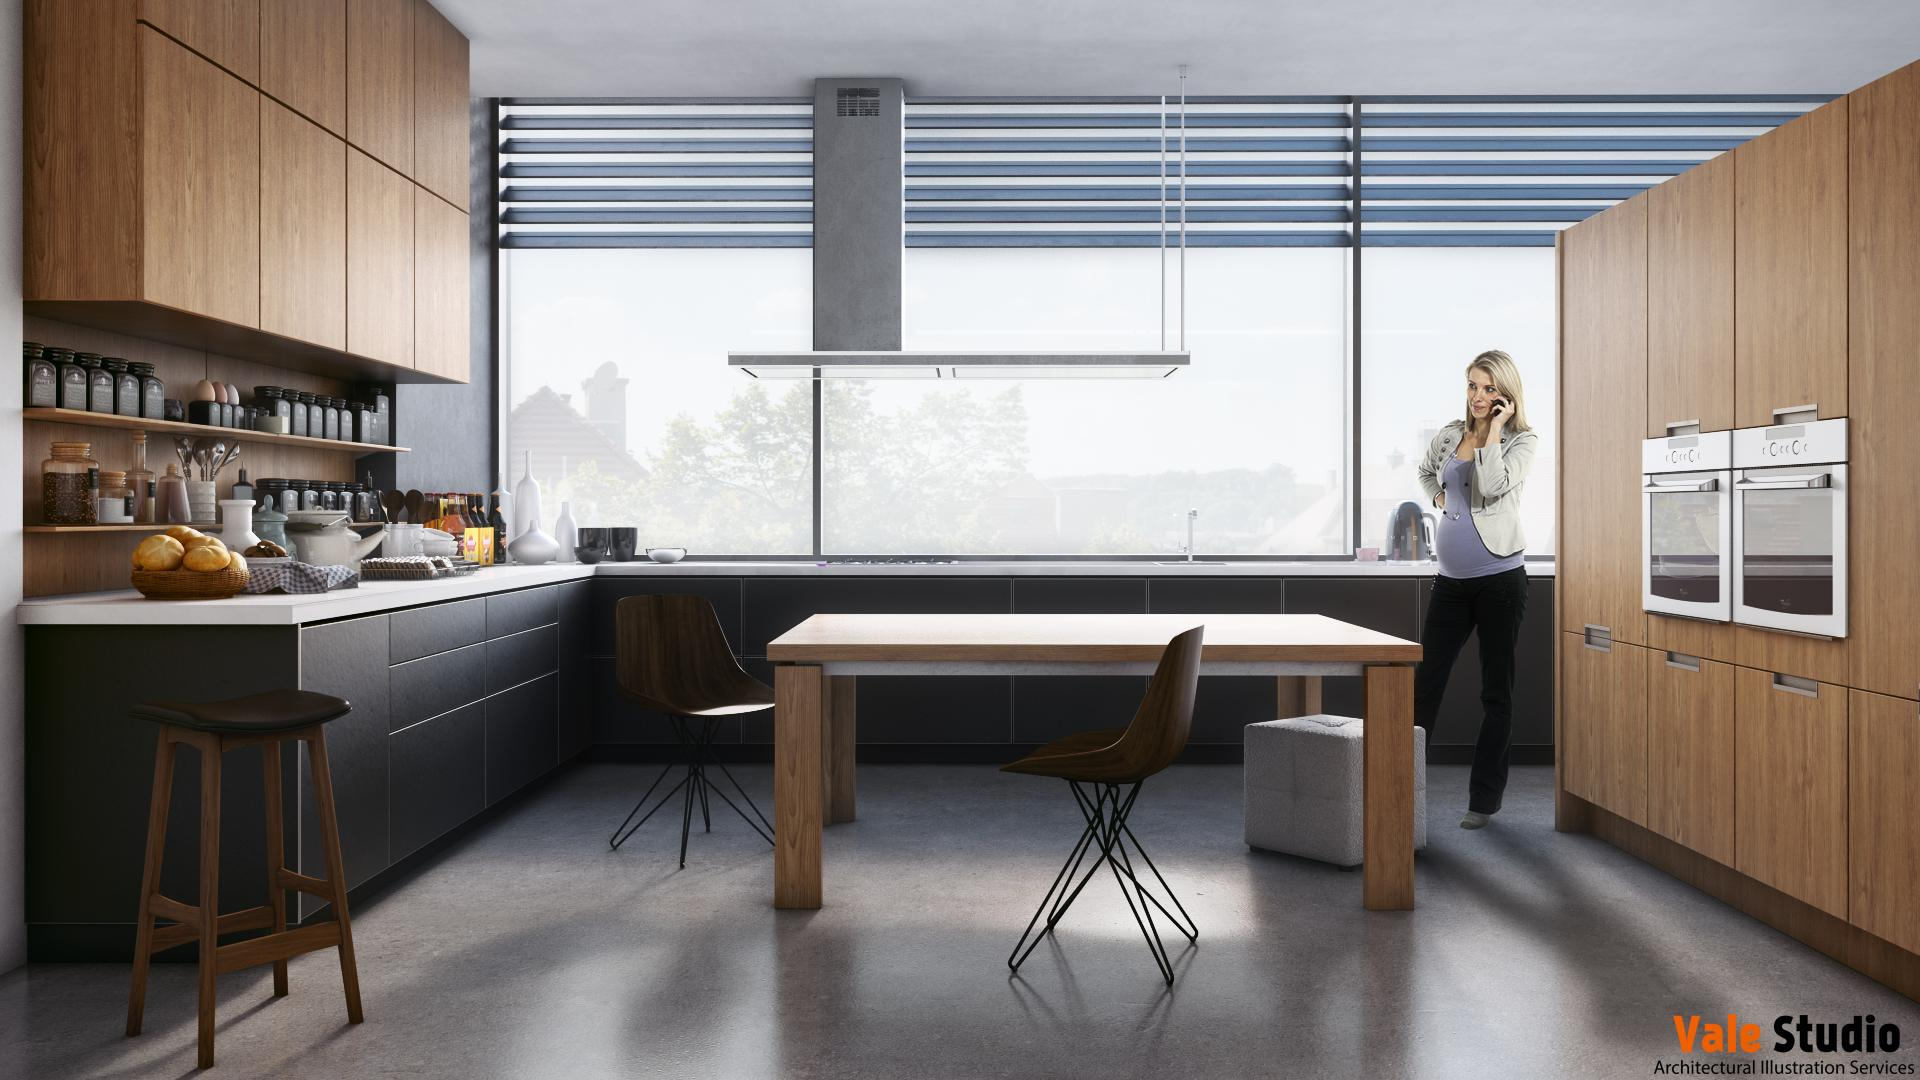 Kitchen Interior Visualization Freelancers 3d